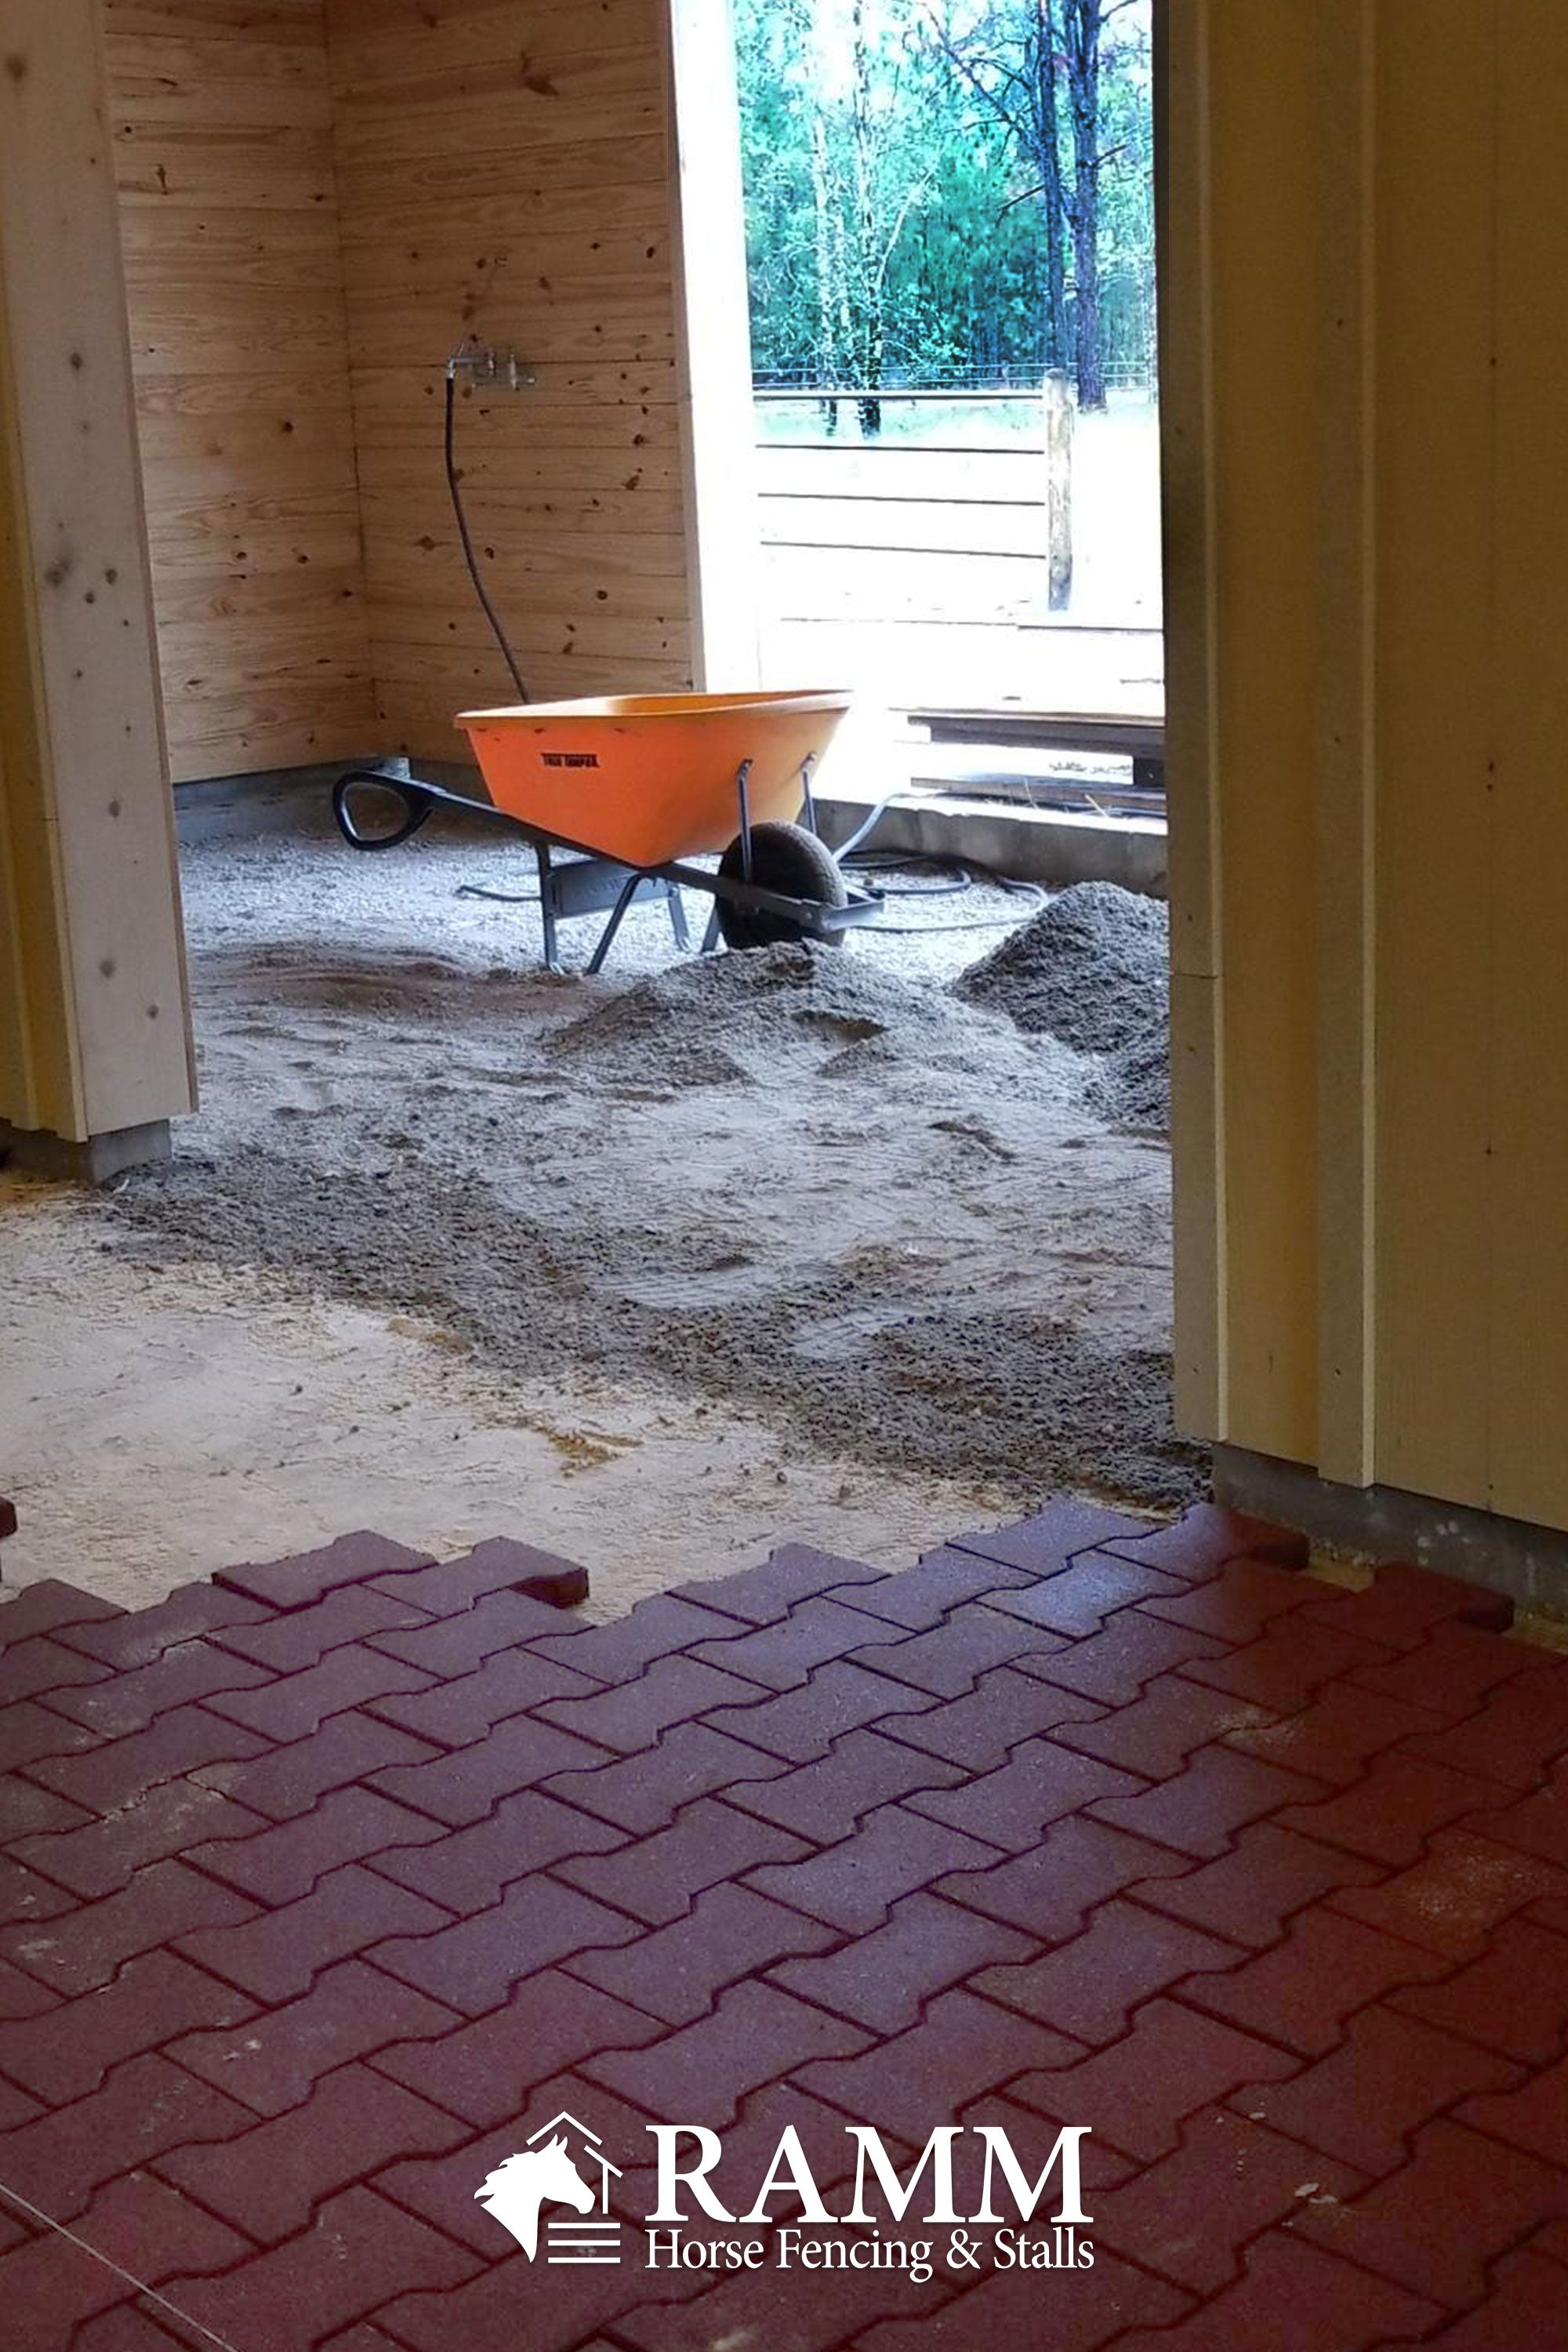 How To Install Rubber Pavers Barn Aisle Flooring Barn Aisle Flooring Barn Stalls Horses